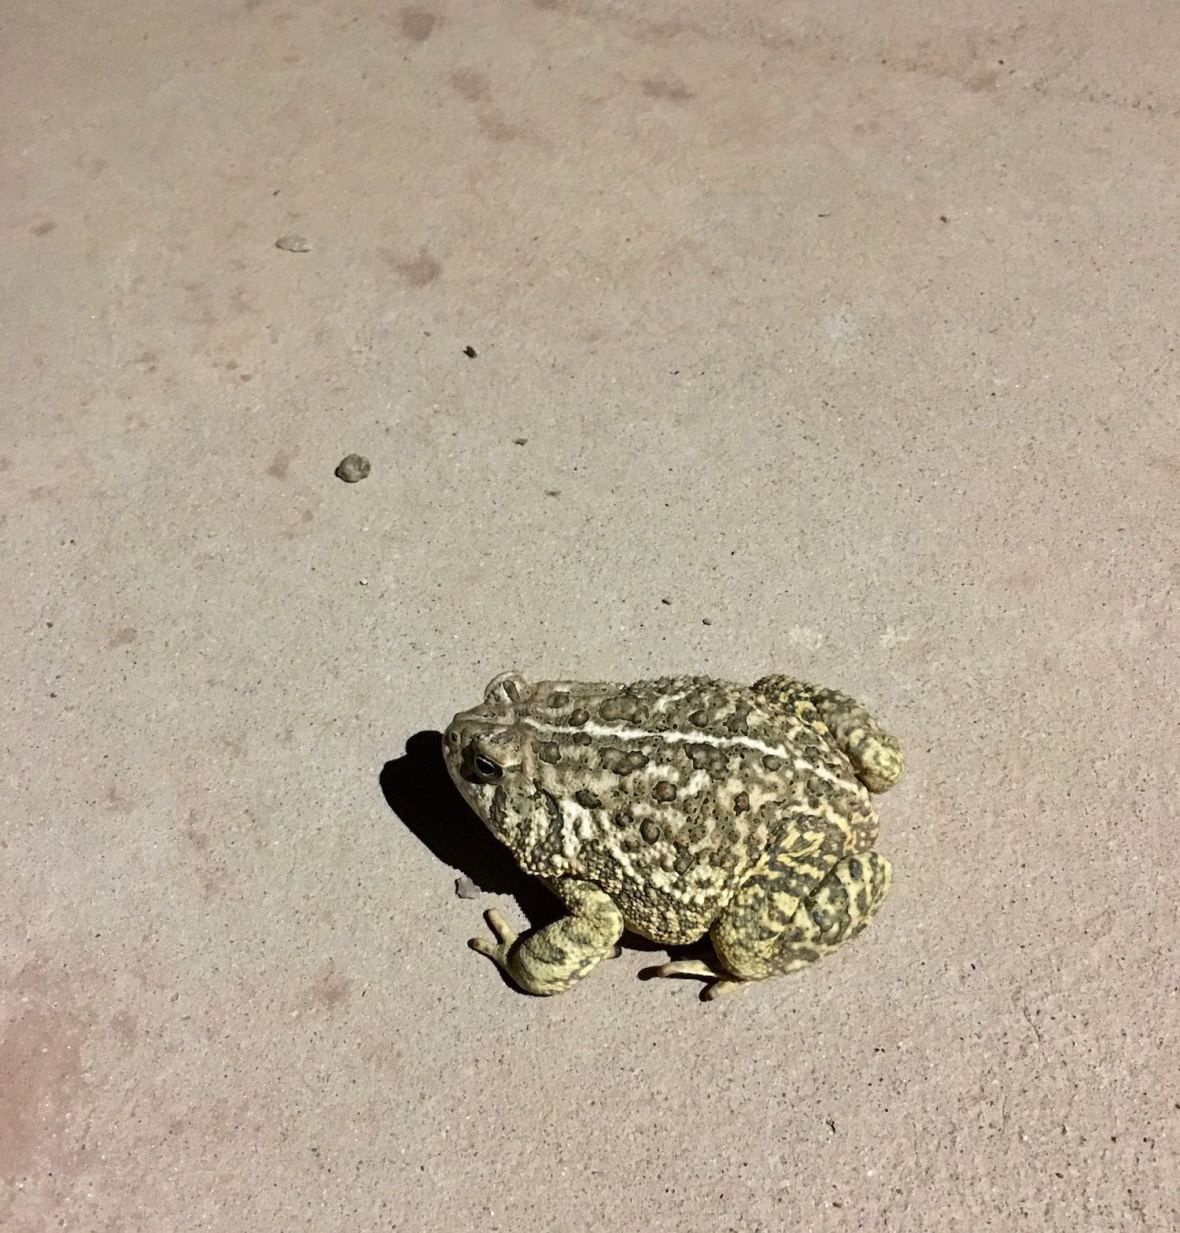 Toad at Conchas Lake State Park, New Mexico